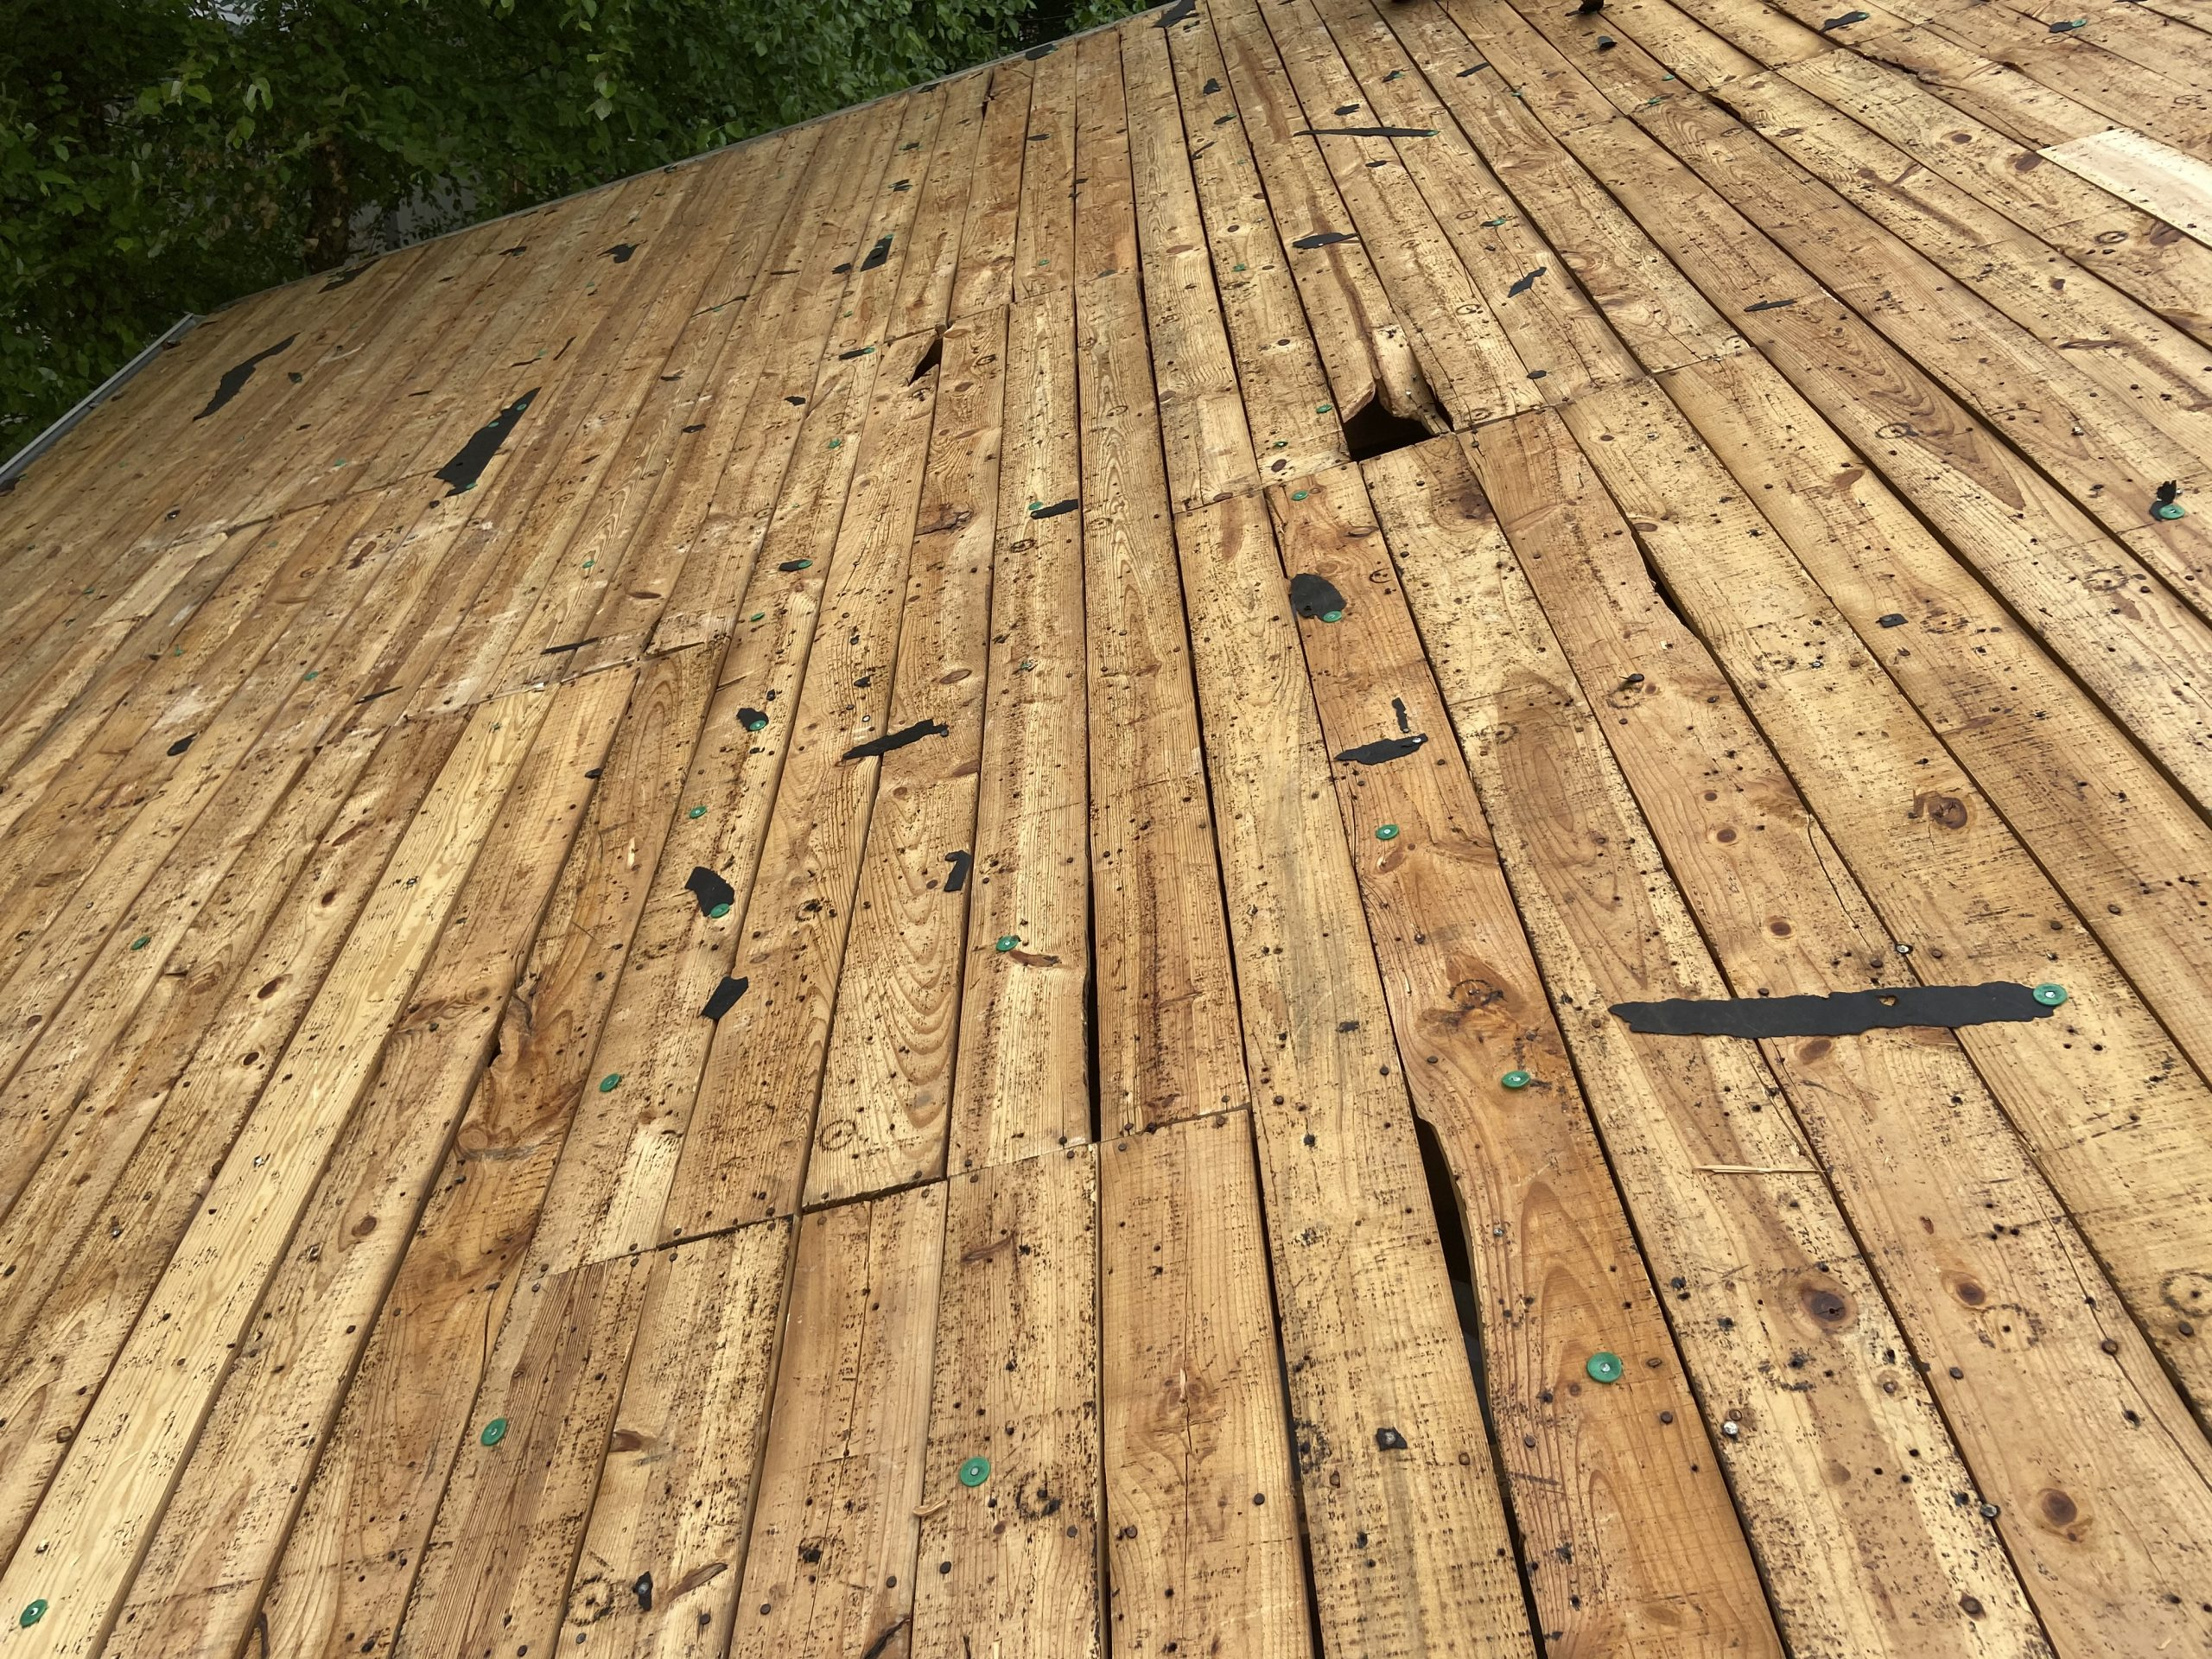 This is a view of the roof deck boards with certain areas with damage.